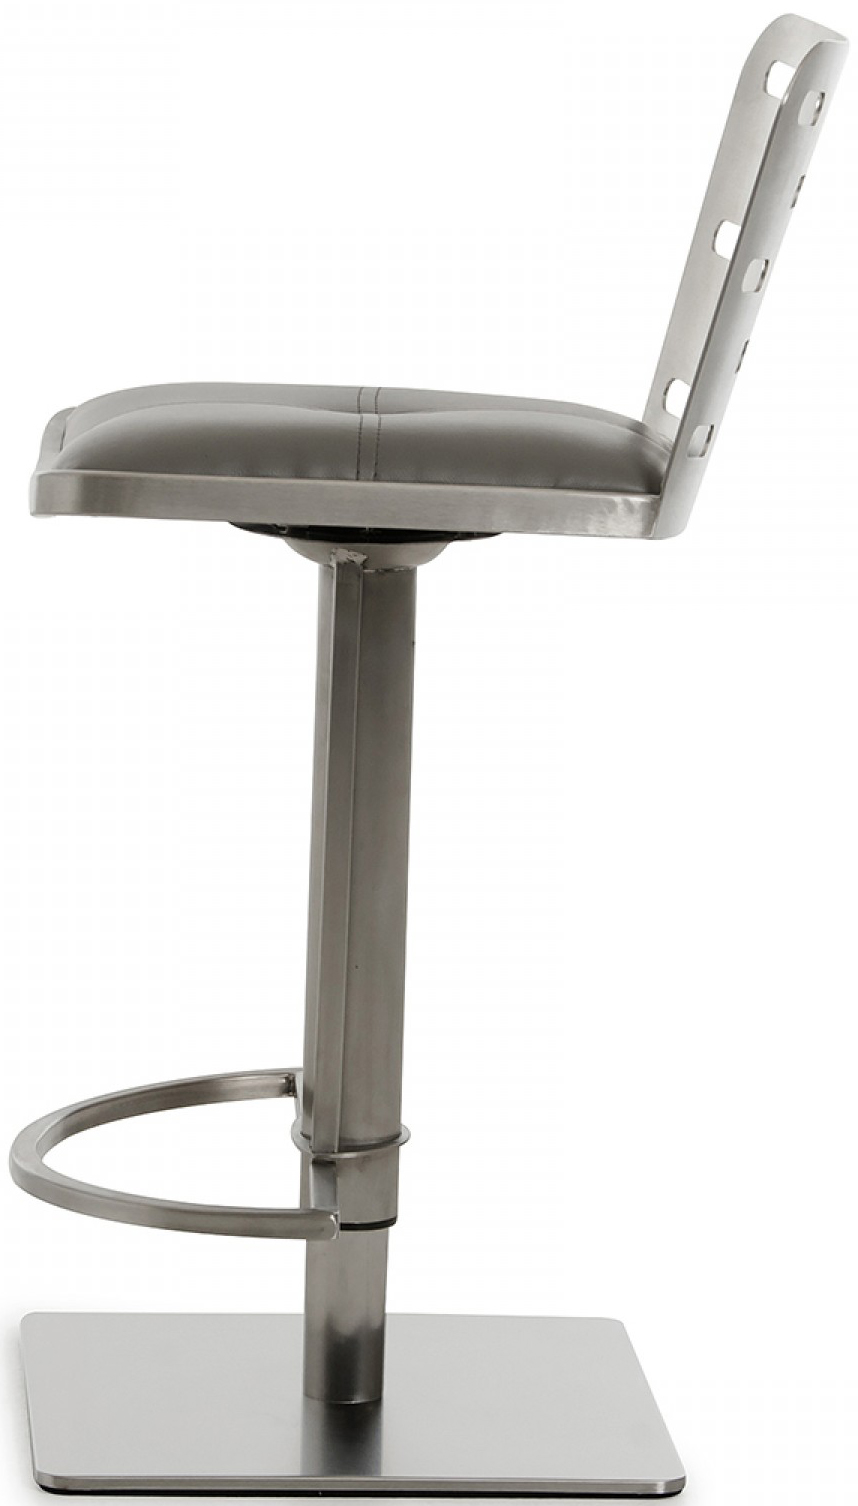 check out this brand new stainless steel bar stool